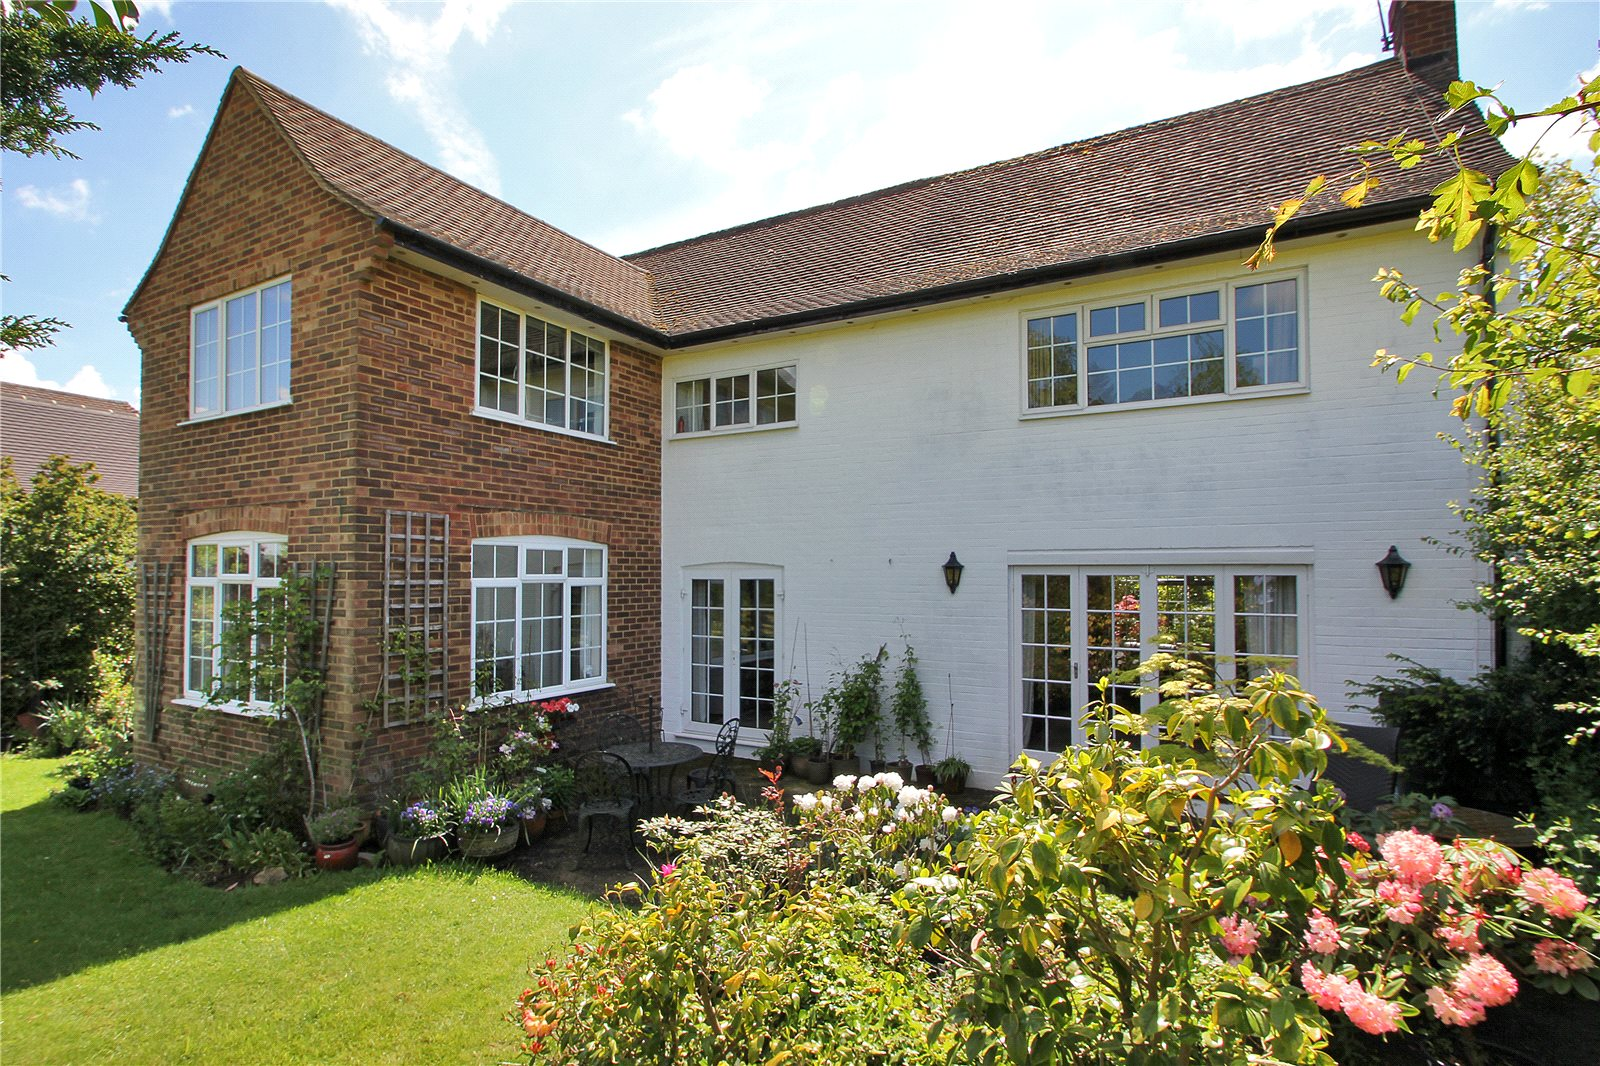 Single Family Home for Sale at Downsview Road, Sevenoaks, Kent, TN13 Sevenoaks, England